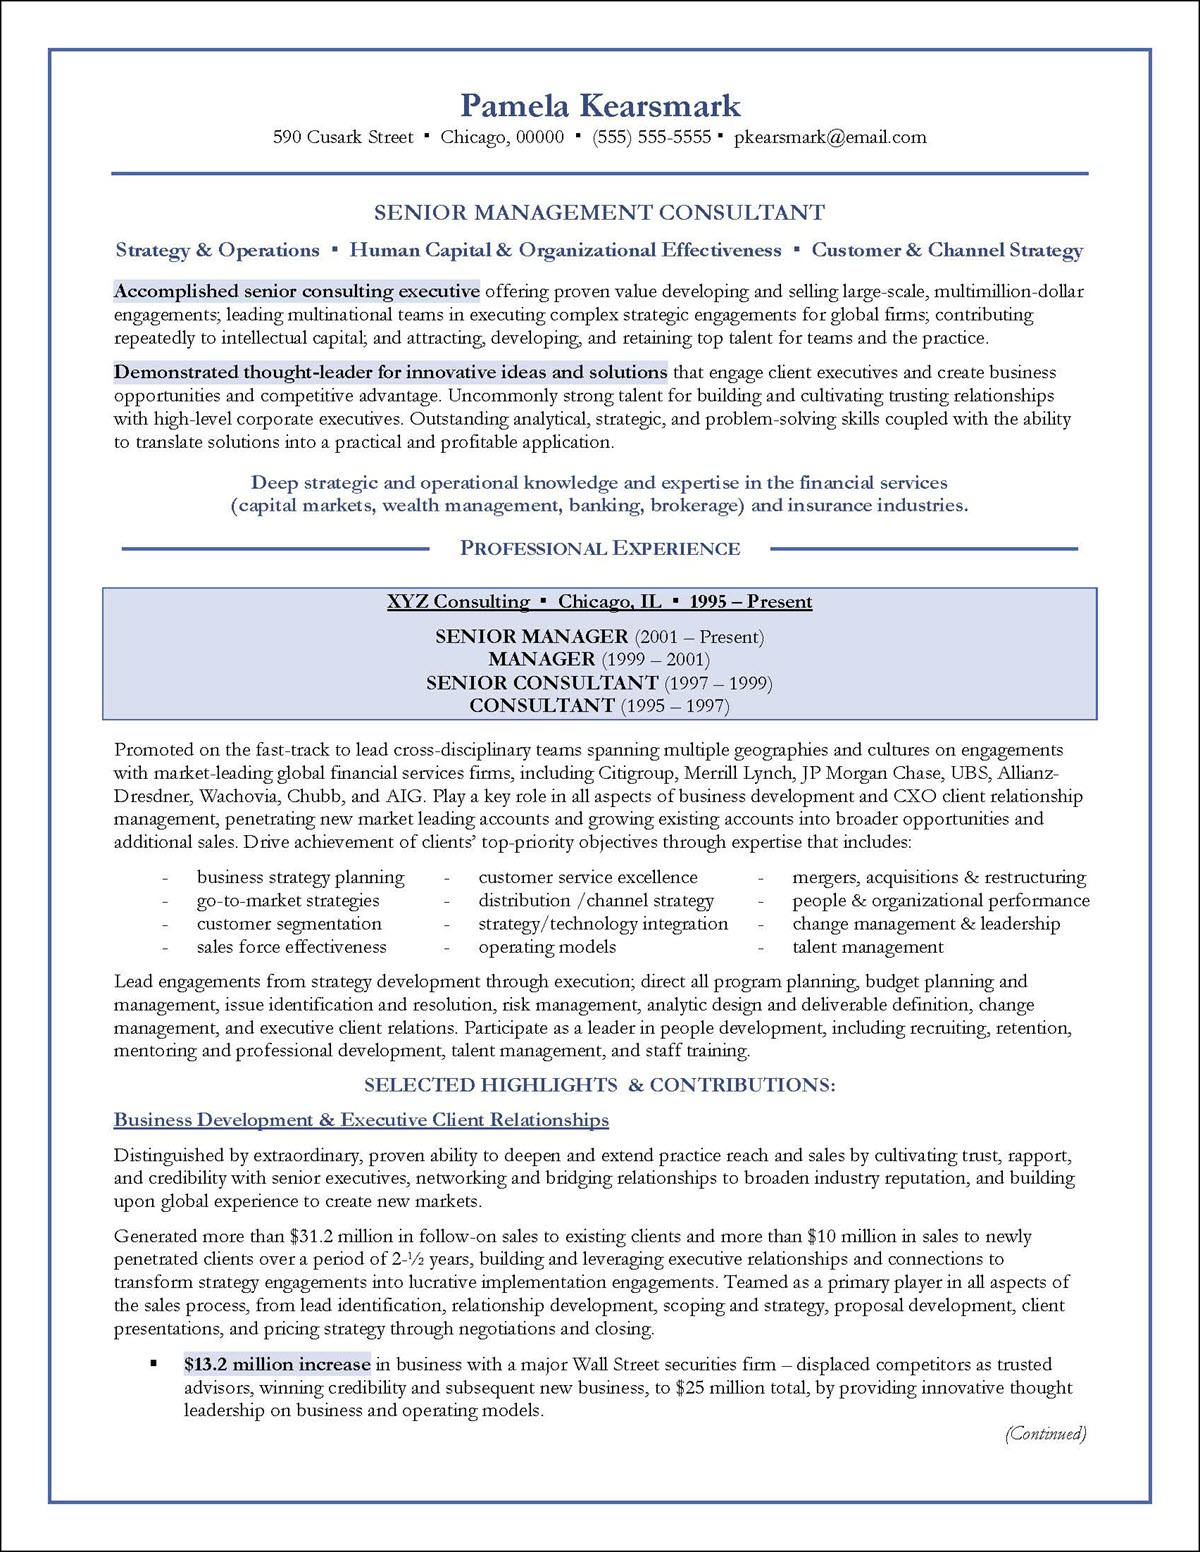 Management Consulting Resume Example Page 1